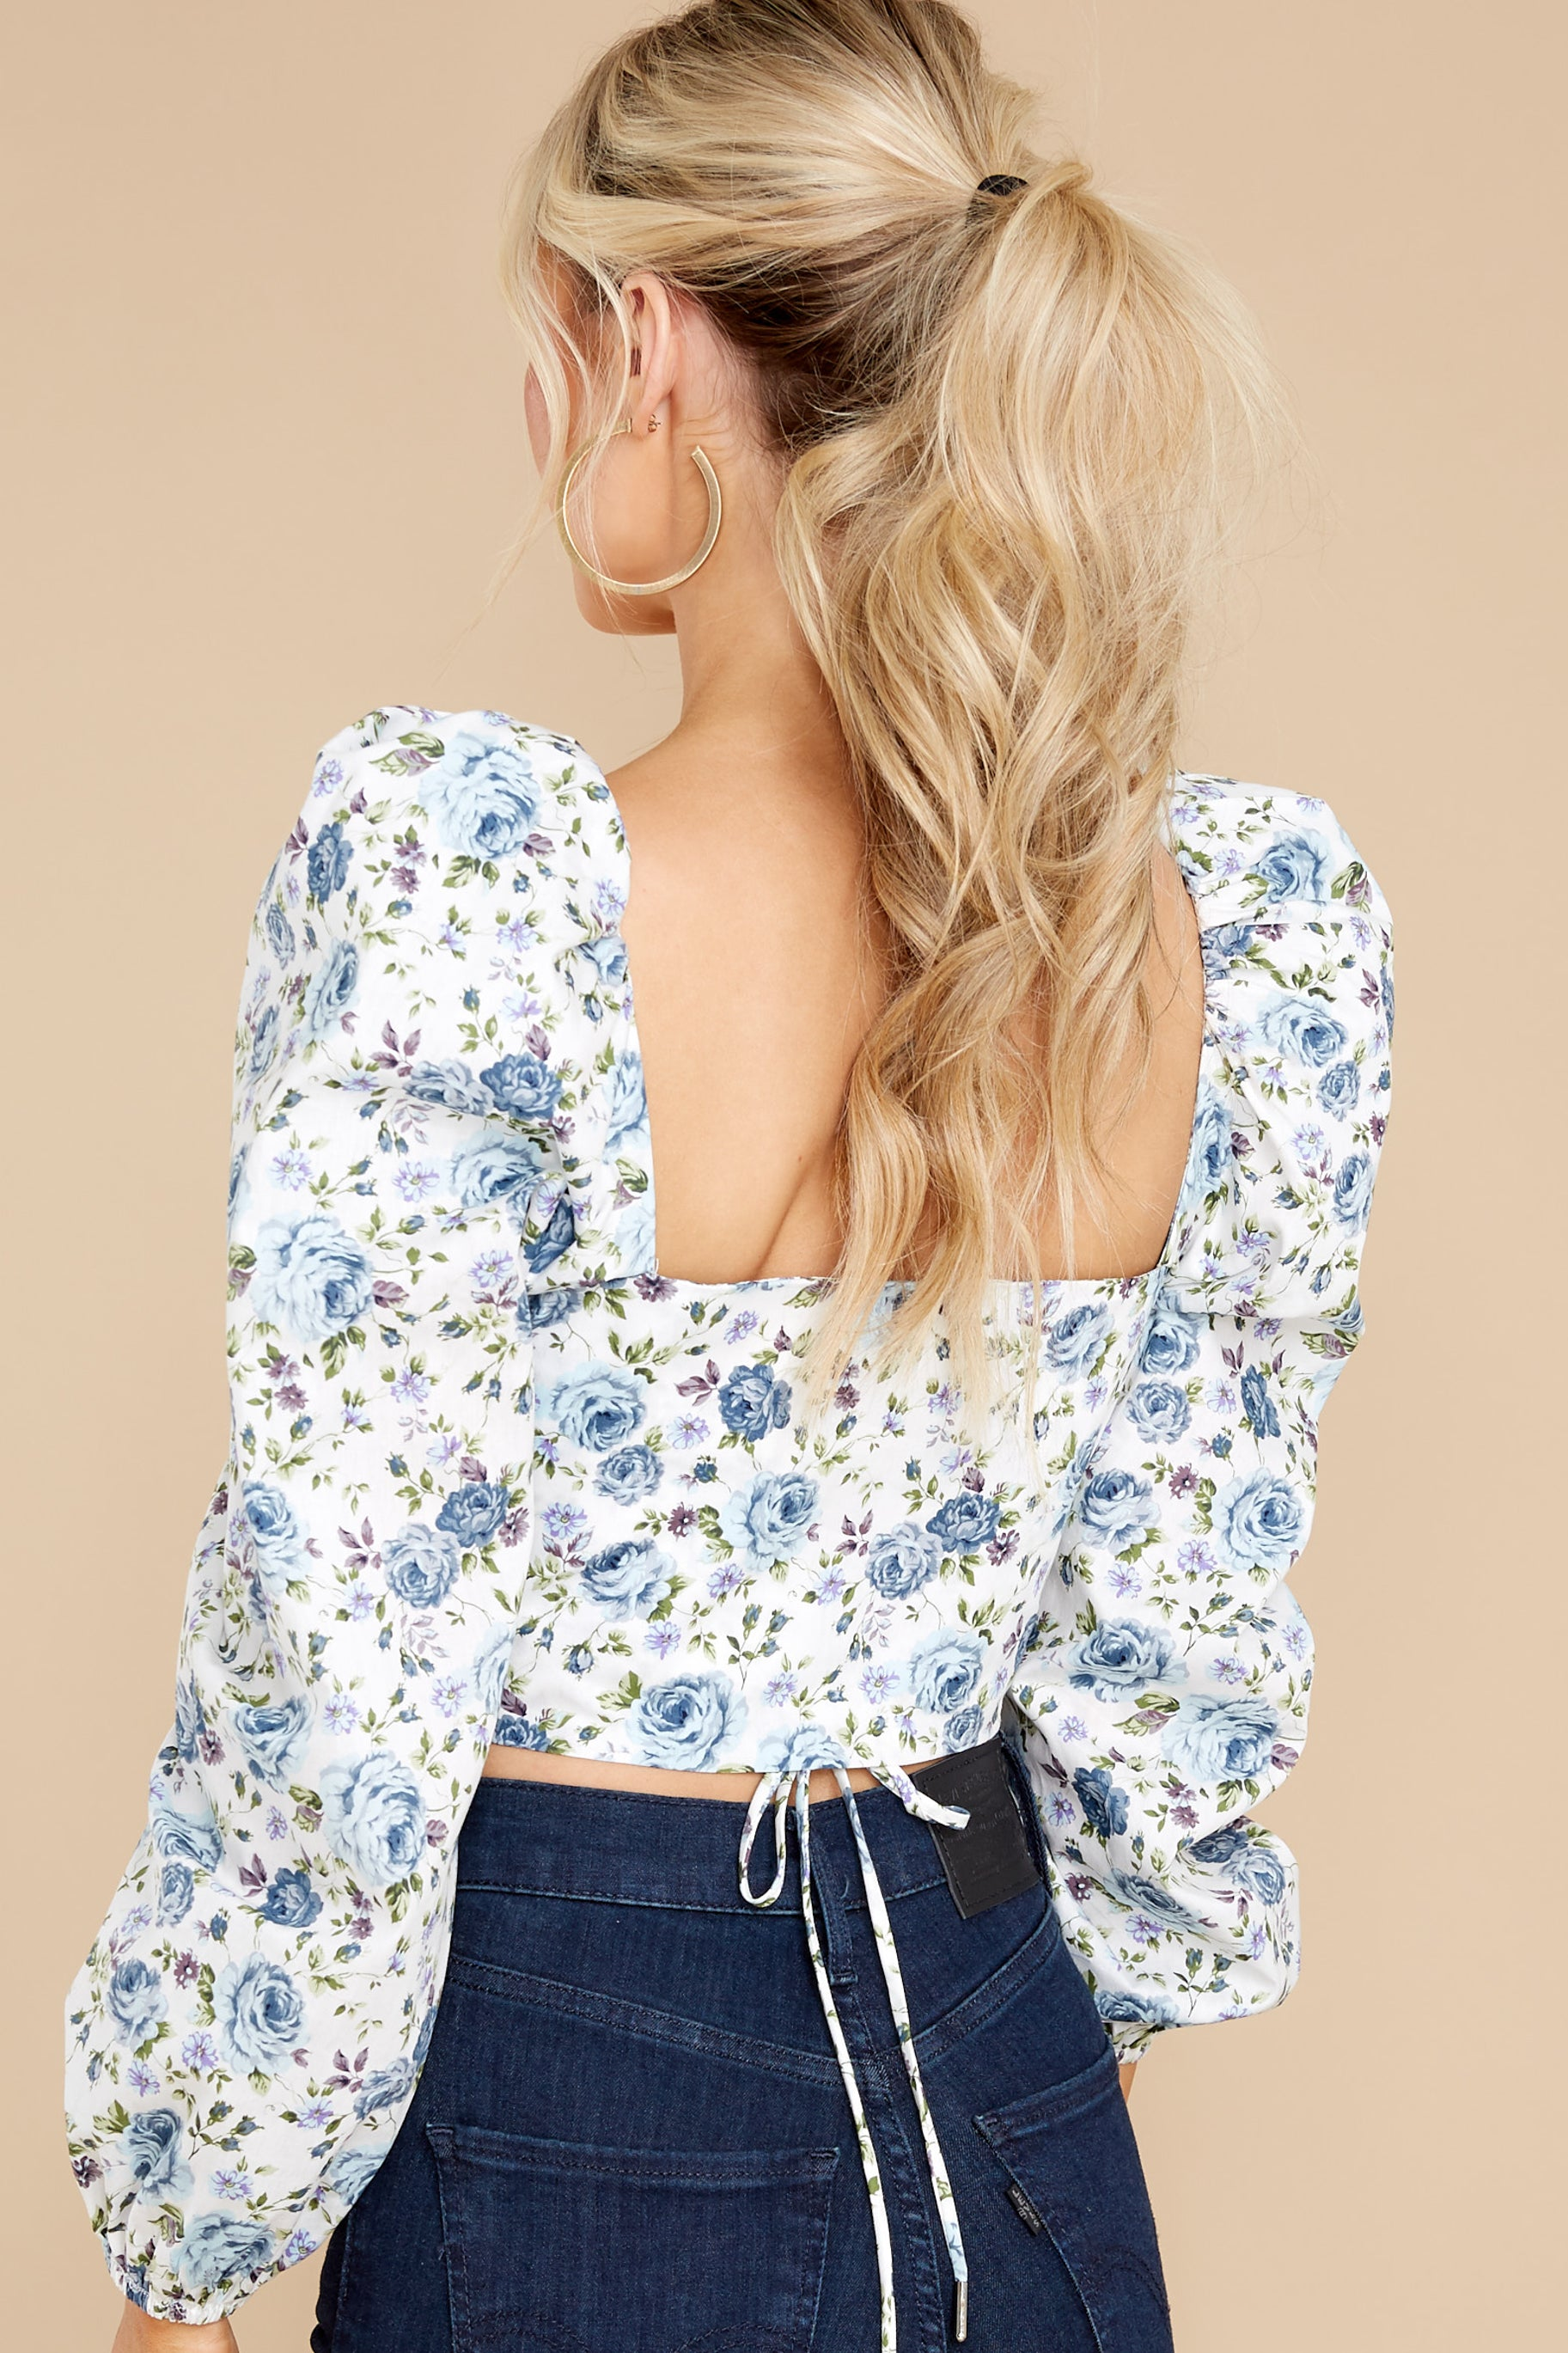 8 Fields Of Love White And Blue Floral Print Crop Top at reddress.com